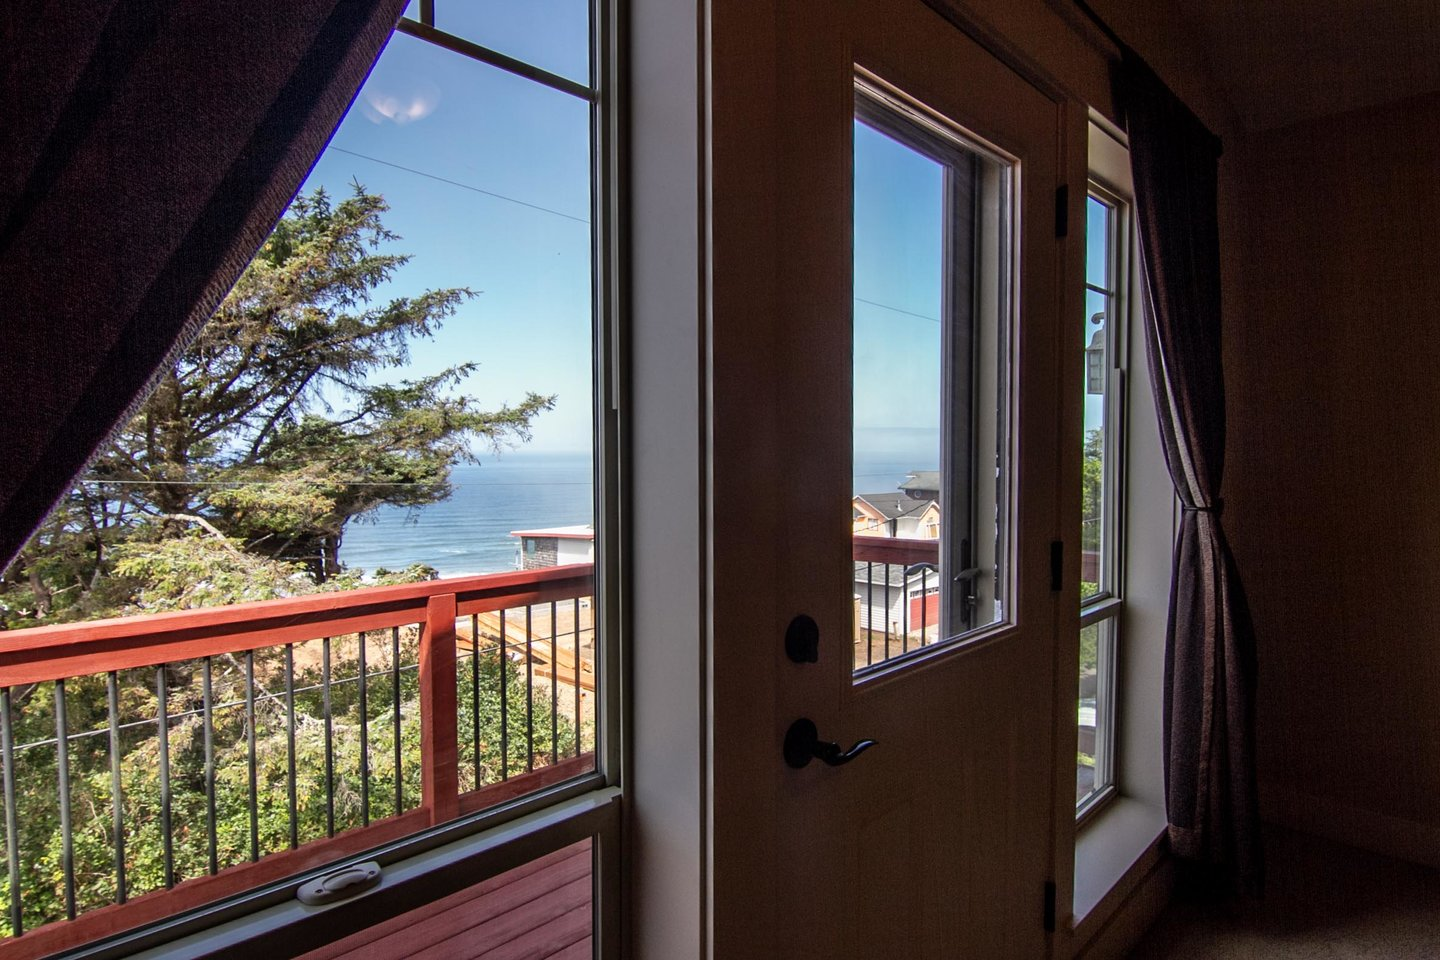 Open the door to your private deck and listen to the waves.